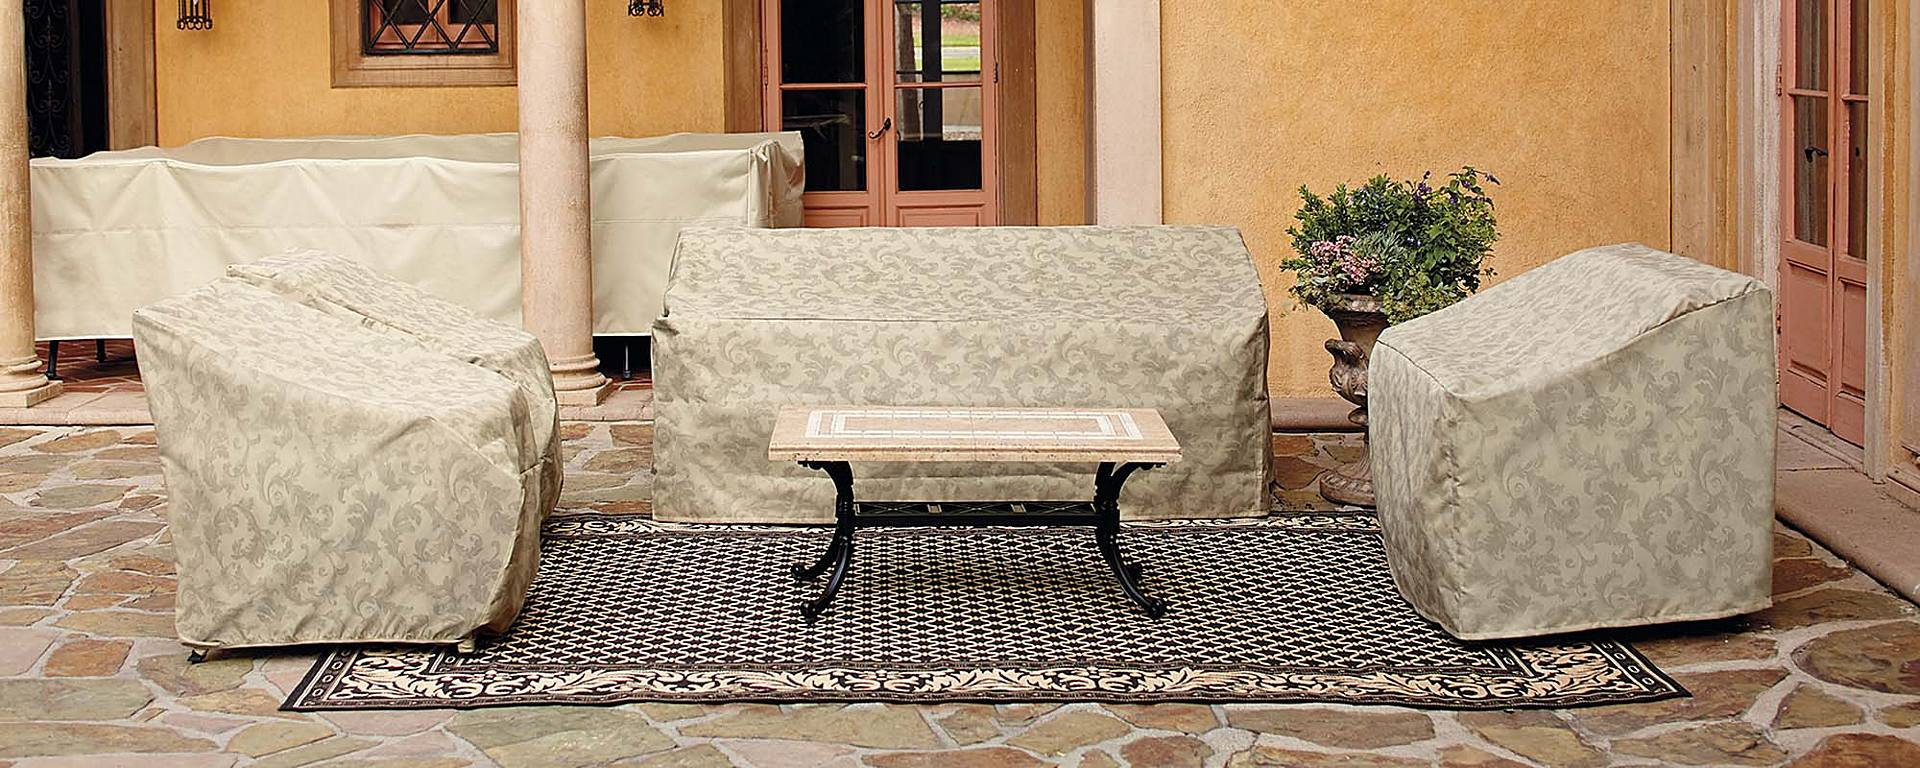 Outdoor furniture covers a buying guide home style for Patio furniture covers